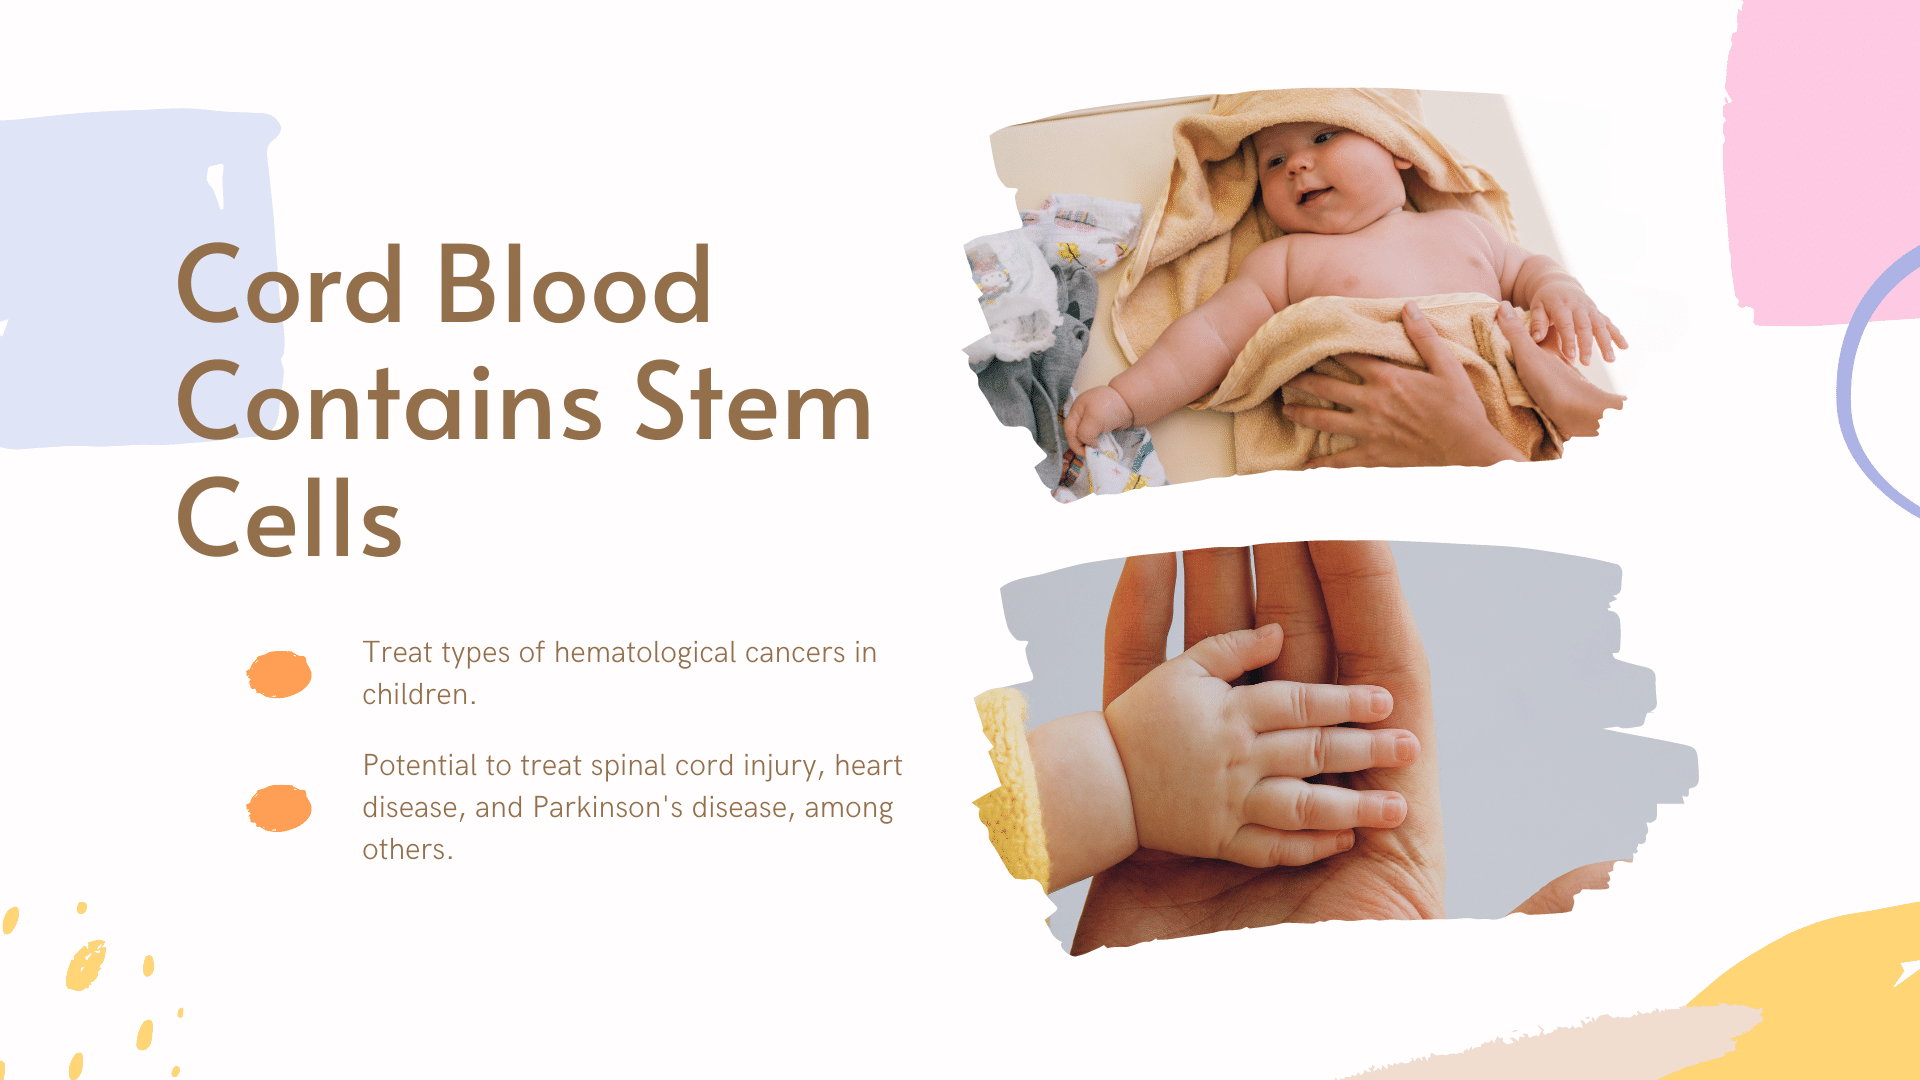 who can donate cord blood - cord blood contains stem cells